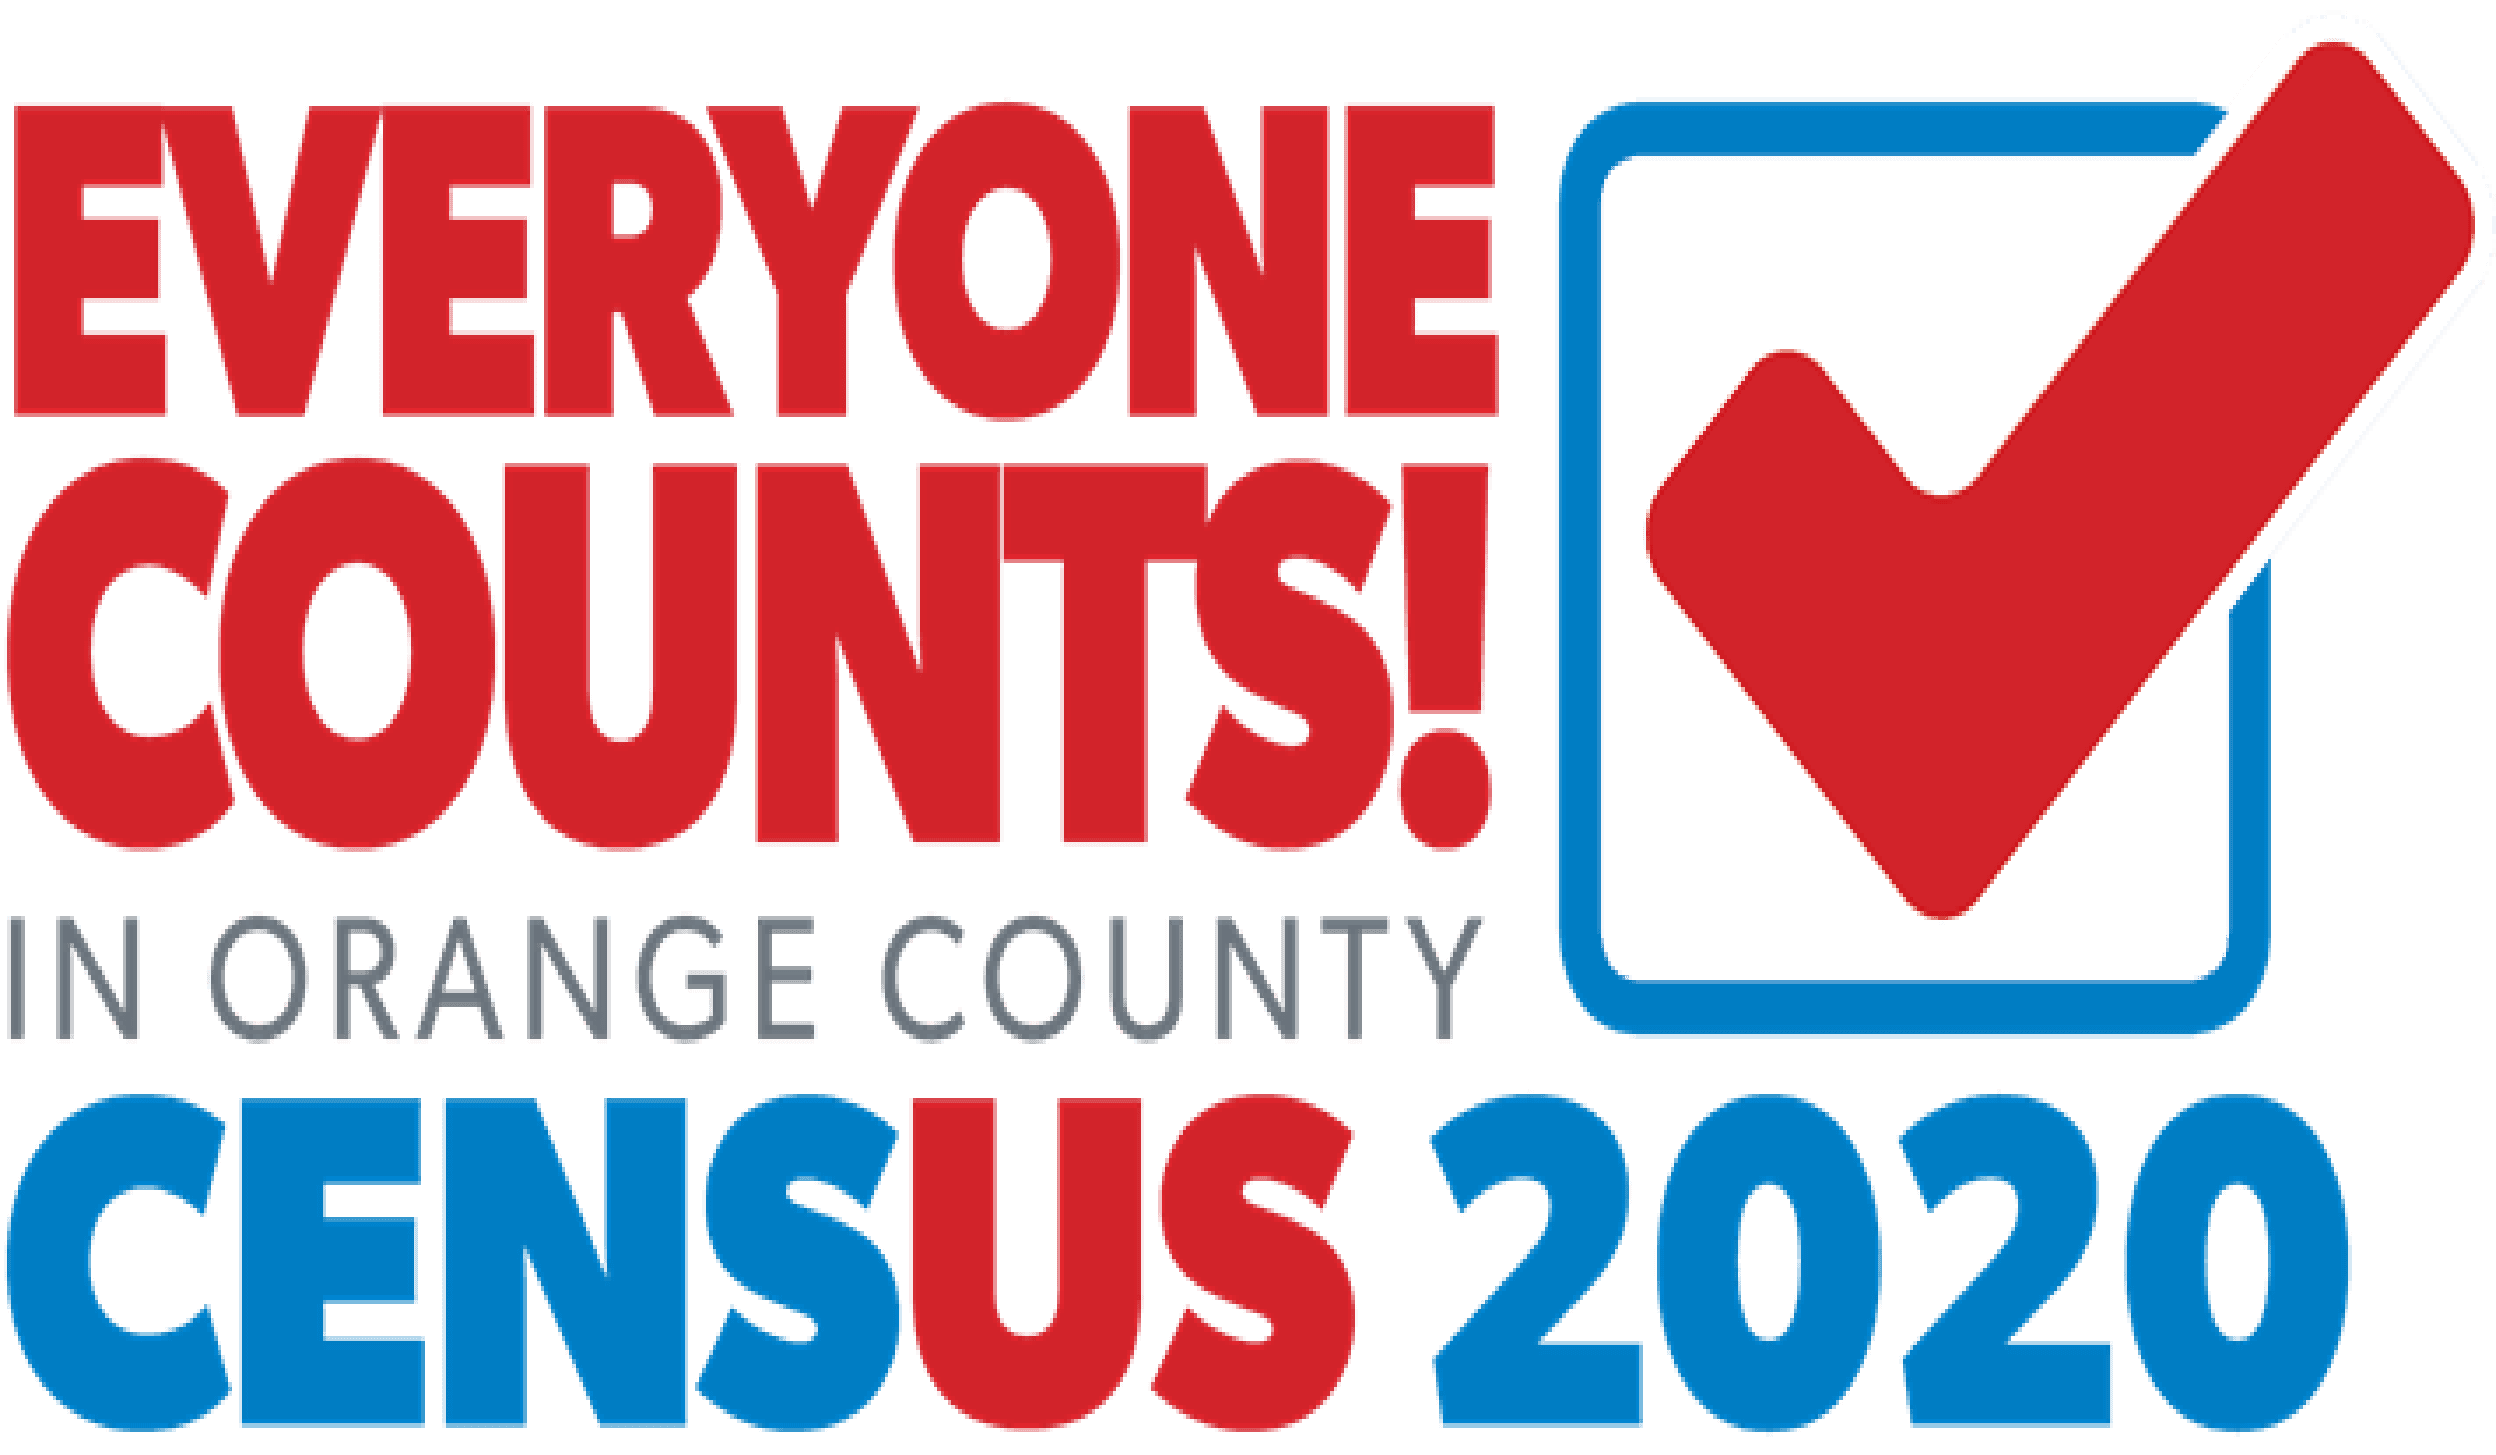 Everyone Counts in Orange County